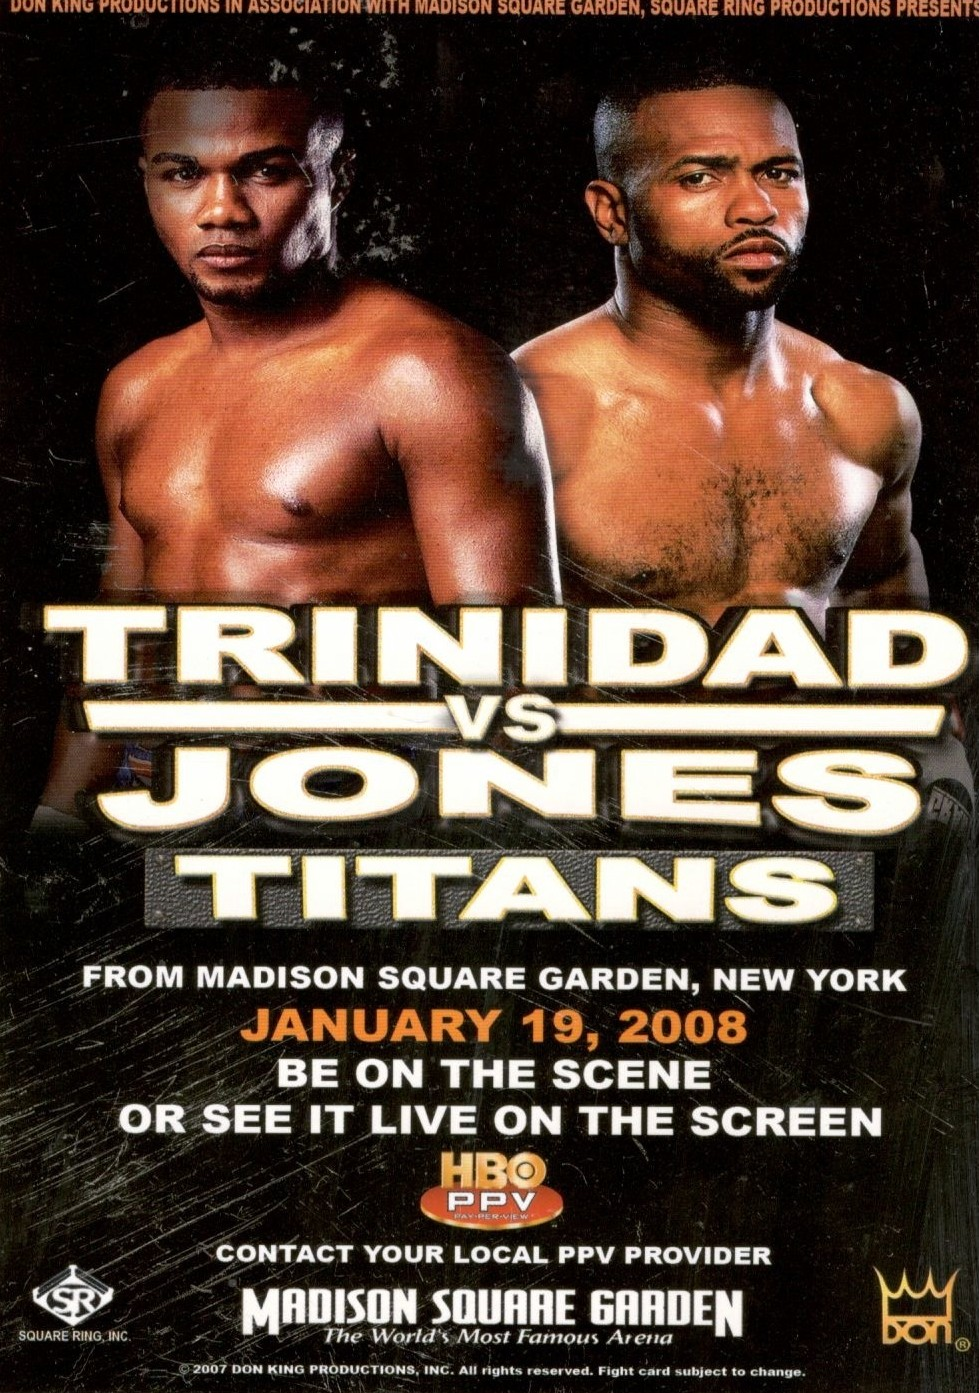 Fight Promotion - Jones vs. Trinidad 2008 Promo Card.